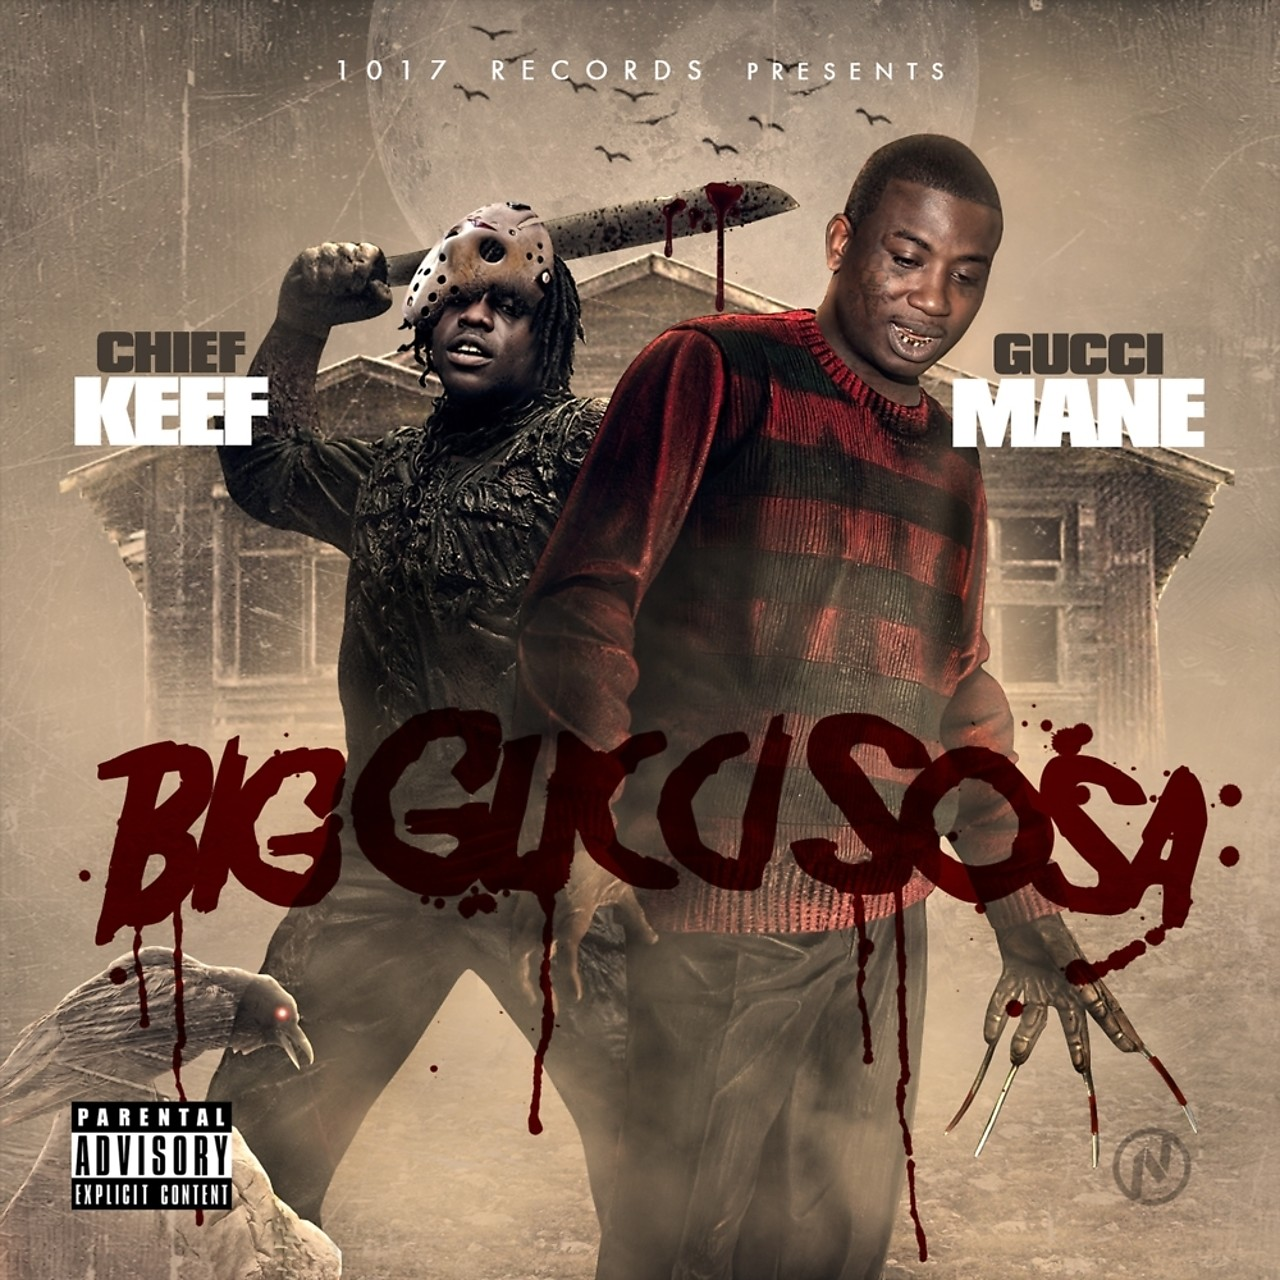 trap rap big gucci sosa